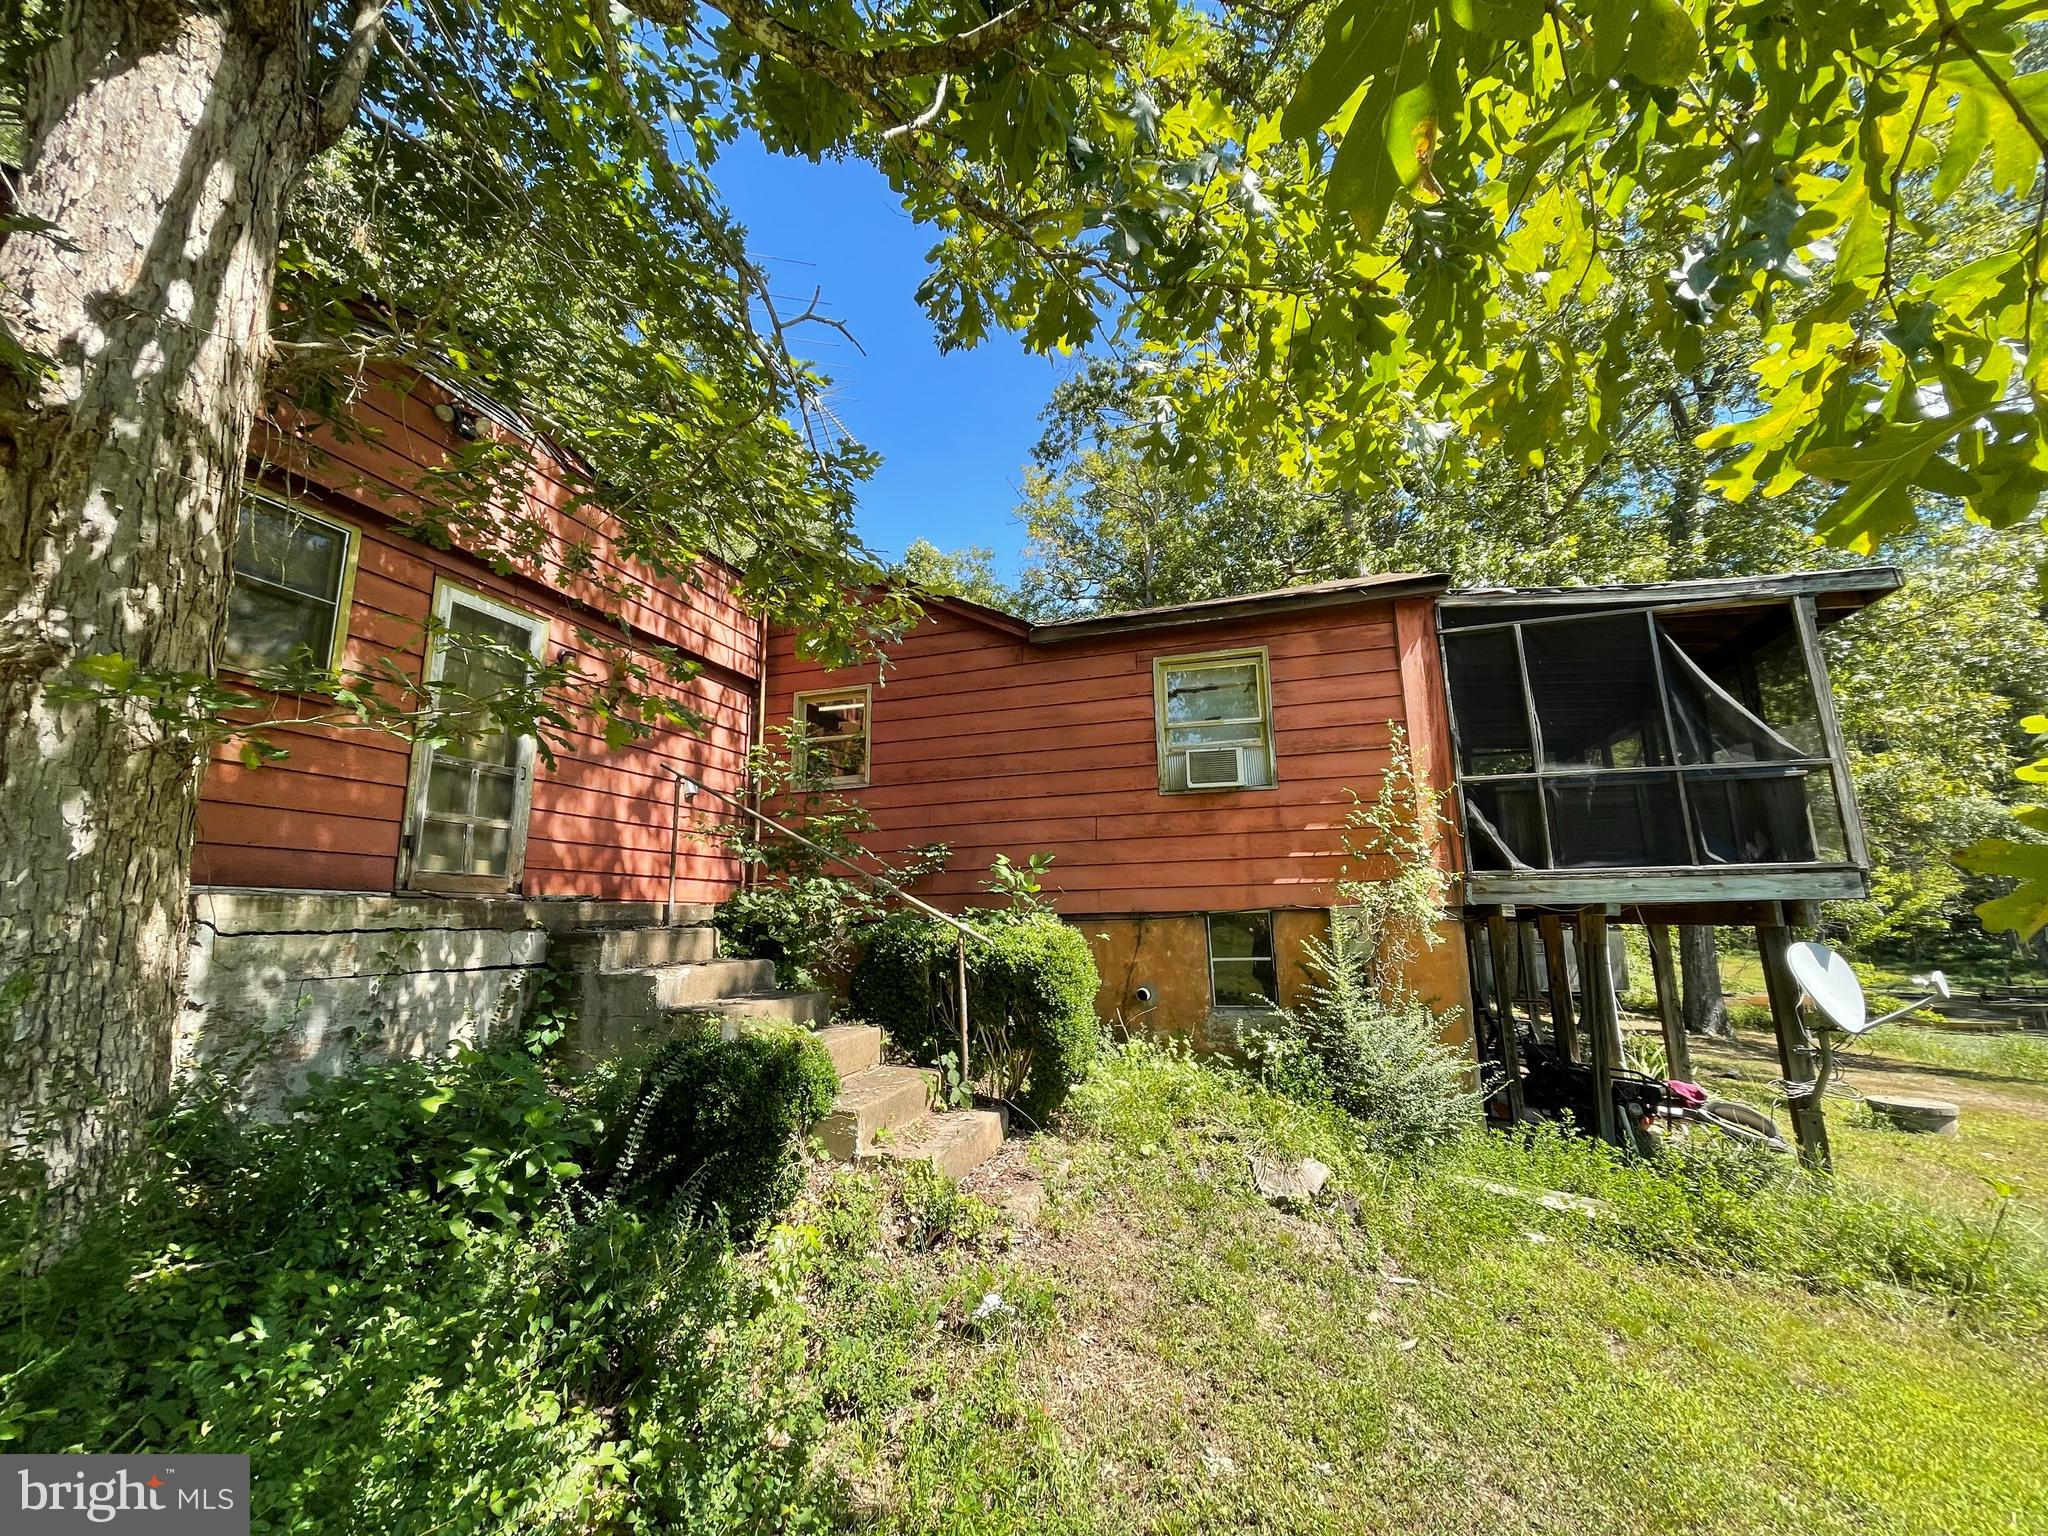 ATTENTION INVESTORS & CASH BUYERS! This diamond in the rough can become your opportunity to create an incredible waterfront home just minutes from town!  And, without the HUGE waterfront price! Maybe you're dreaming of your very on AIRBNB? Maybe you're wanting a get-a-way of your own?  Who says you can't have both?    With almost 3 acres, you can ENJOY privacy, fishing, beautiful flowers and nature all around you! Take a short walk over the bridge and explore what's on the other side! Explore the lake by canoe! There's plenty of space to explore and even create even more trails! Don't let this opportunity pass and you miss out on all of your dreams! Explore those dreams and make them a reality!! Those dreams can create income and/or your very own get-a-way! This gem is conveniently located in Spotsylvania, near the courthouse area,  schools, shopping, dining & medical offices!